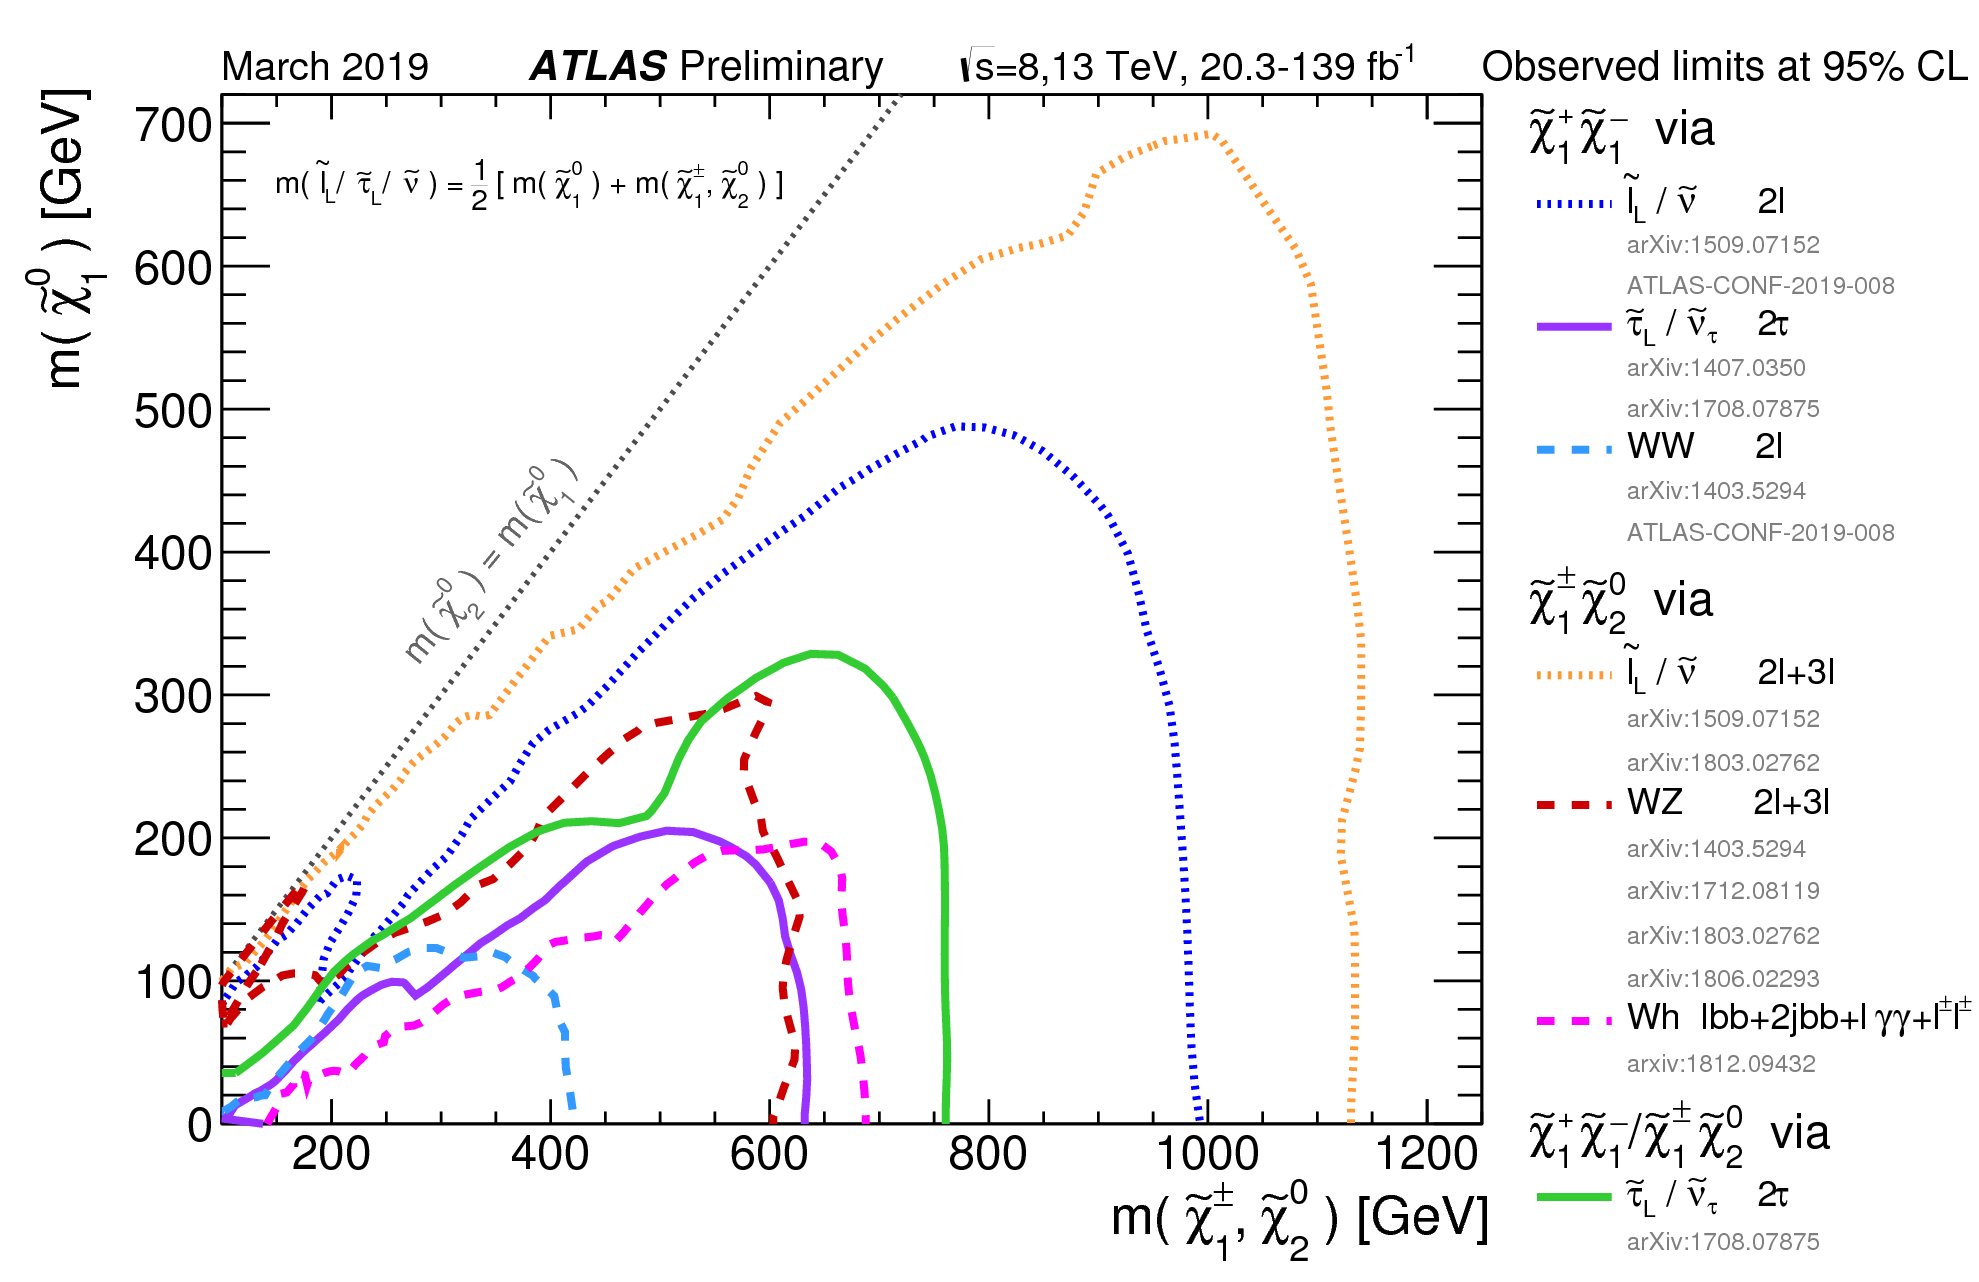 https://atlas.web.cern.ch/Atlas/GROUPS/PHYSICS/CombinedSummaryPlots/SUSY/ATLAS_SUSY_EWSummary/ATLAS_SUSY_EWSummary.png